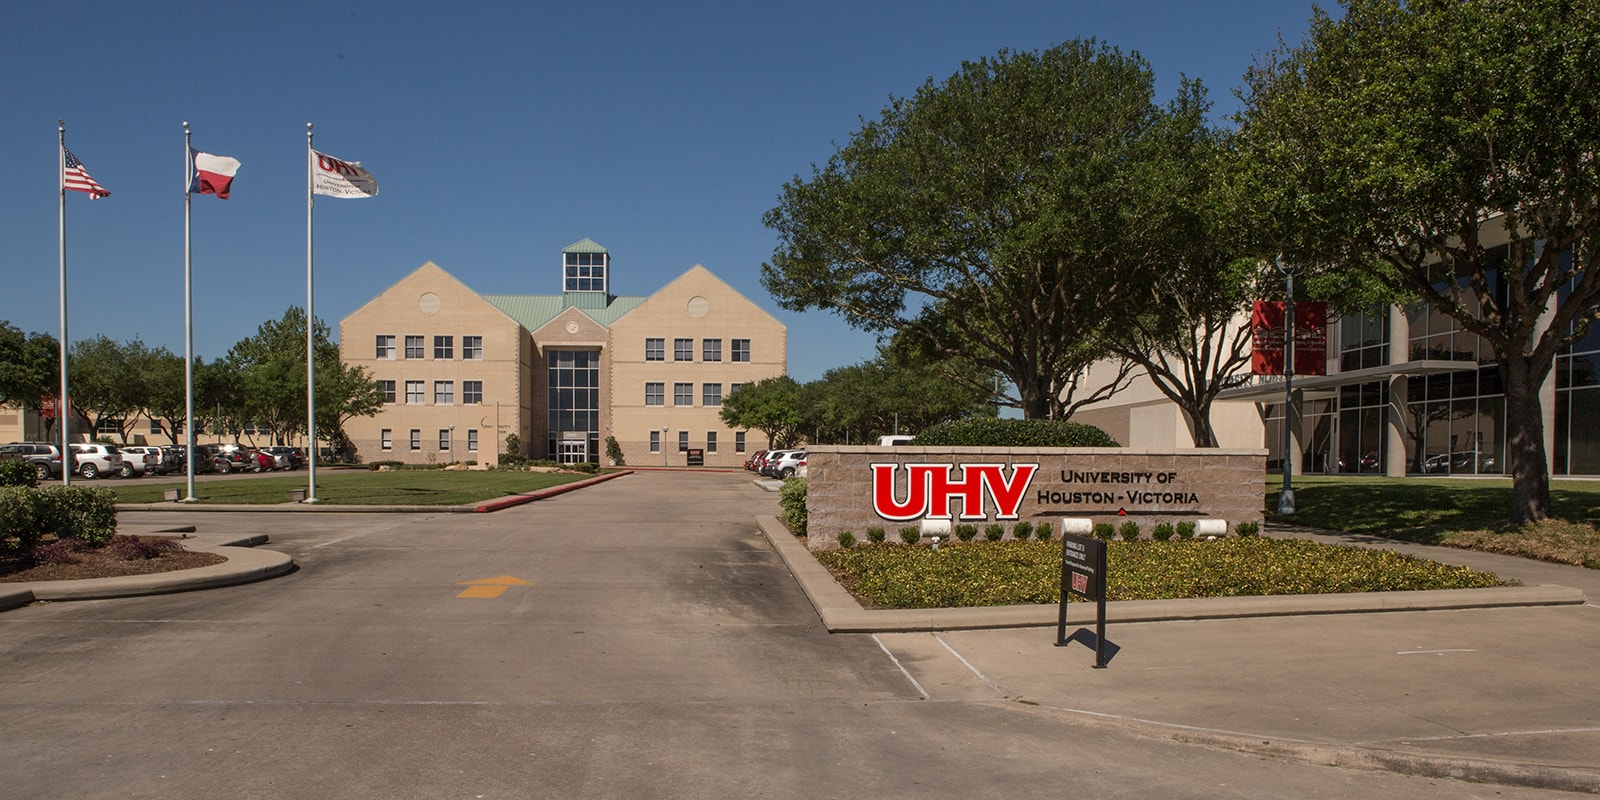 University Of Houston Academic Calendar 2021 - March 2021